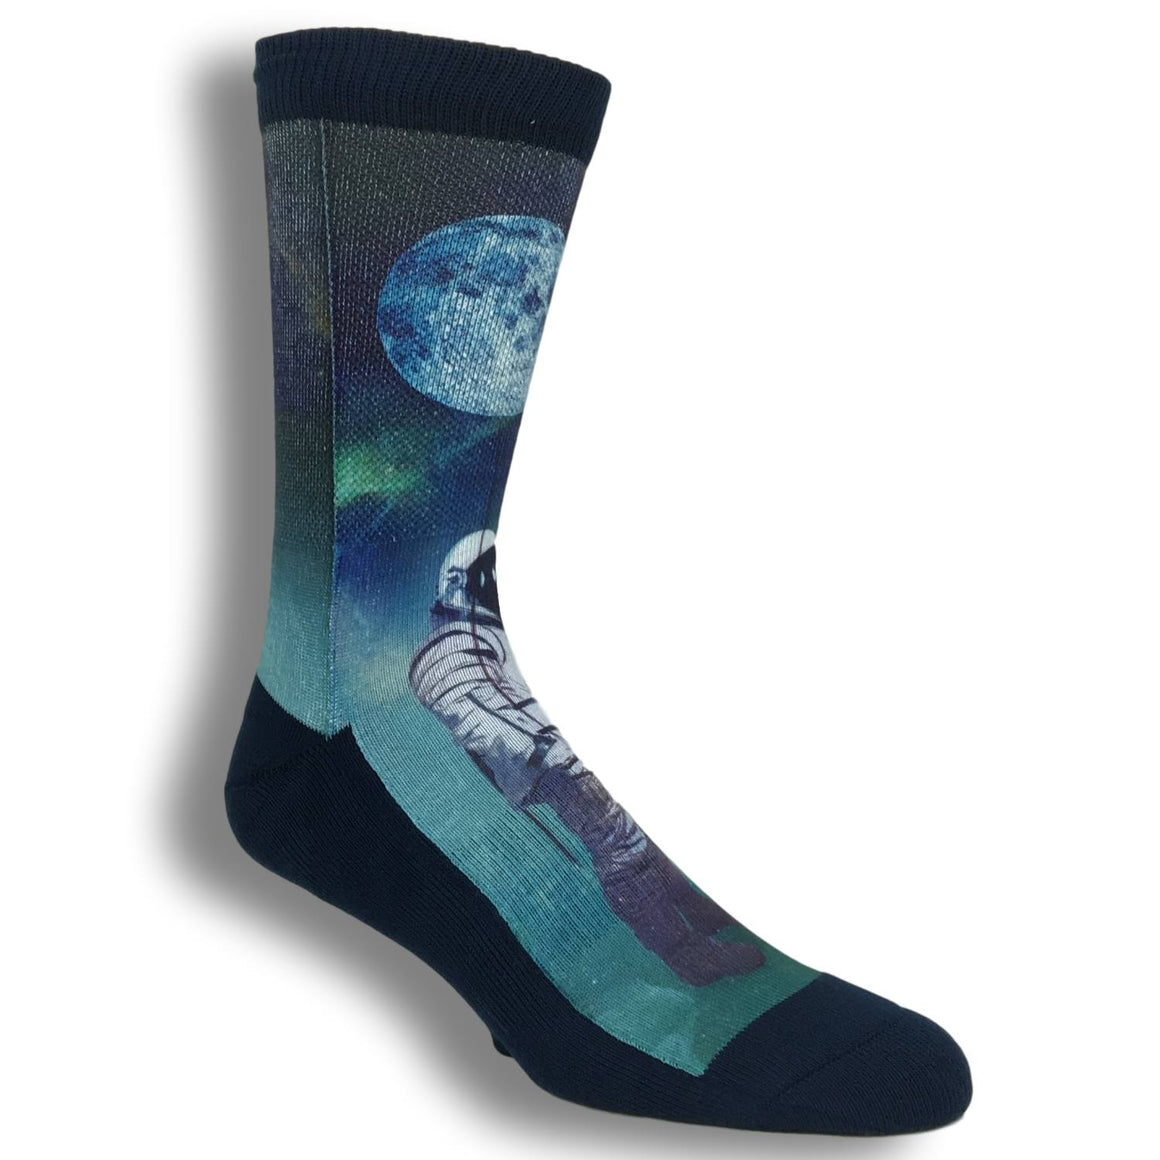 Astronaut with Balloon Printed Socks by Good Luck Sock - The Sock Spot